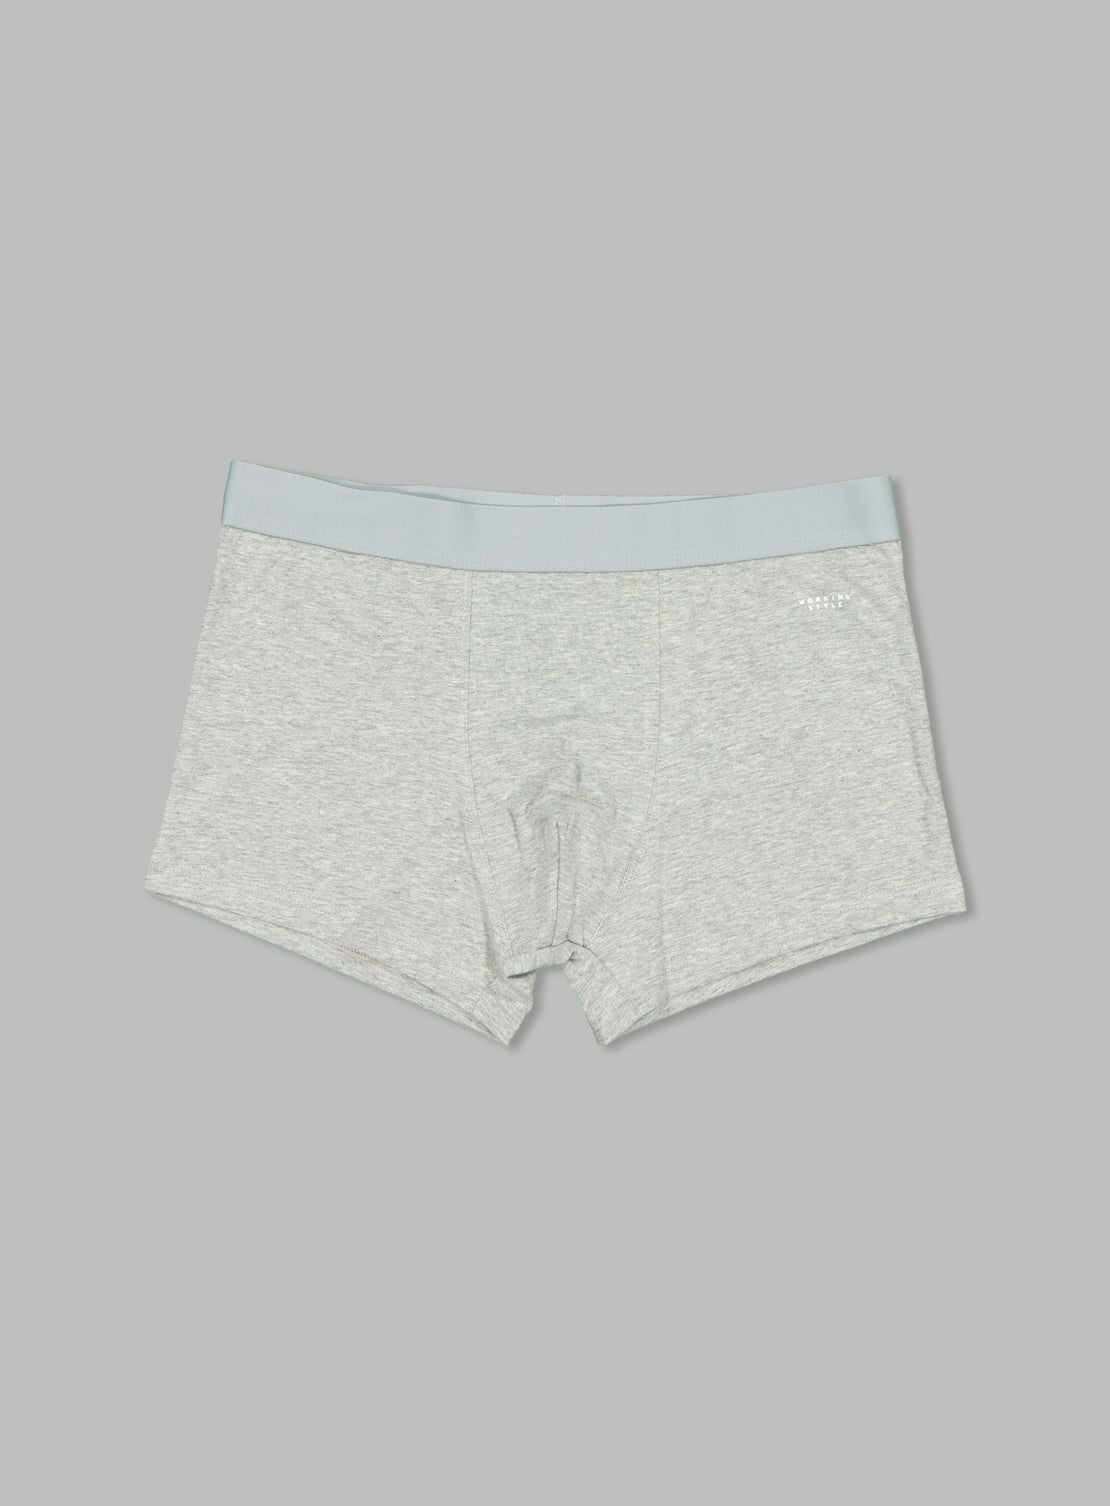 *Grey Marle Cotton Fitted Trunks